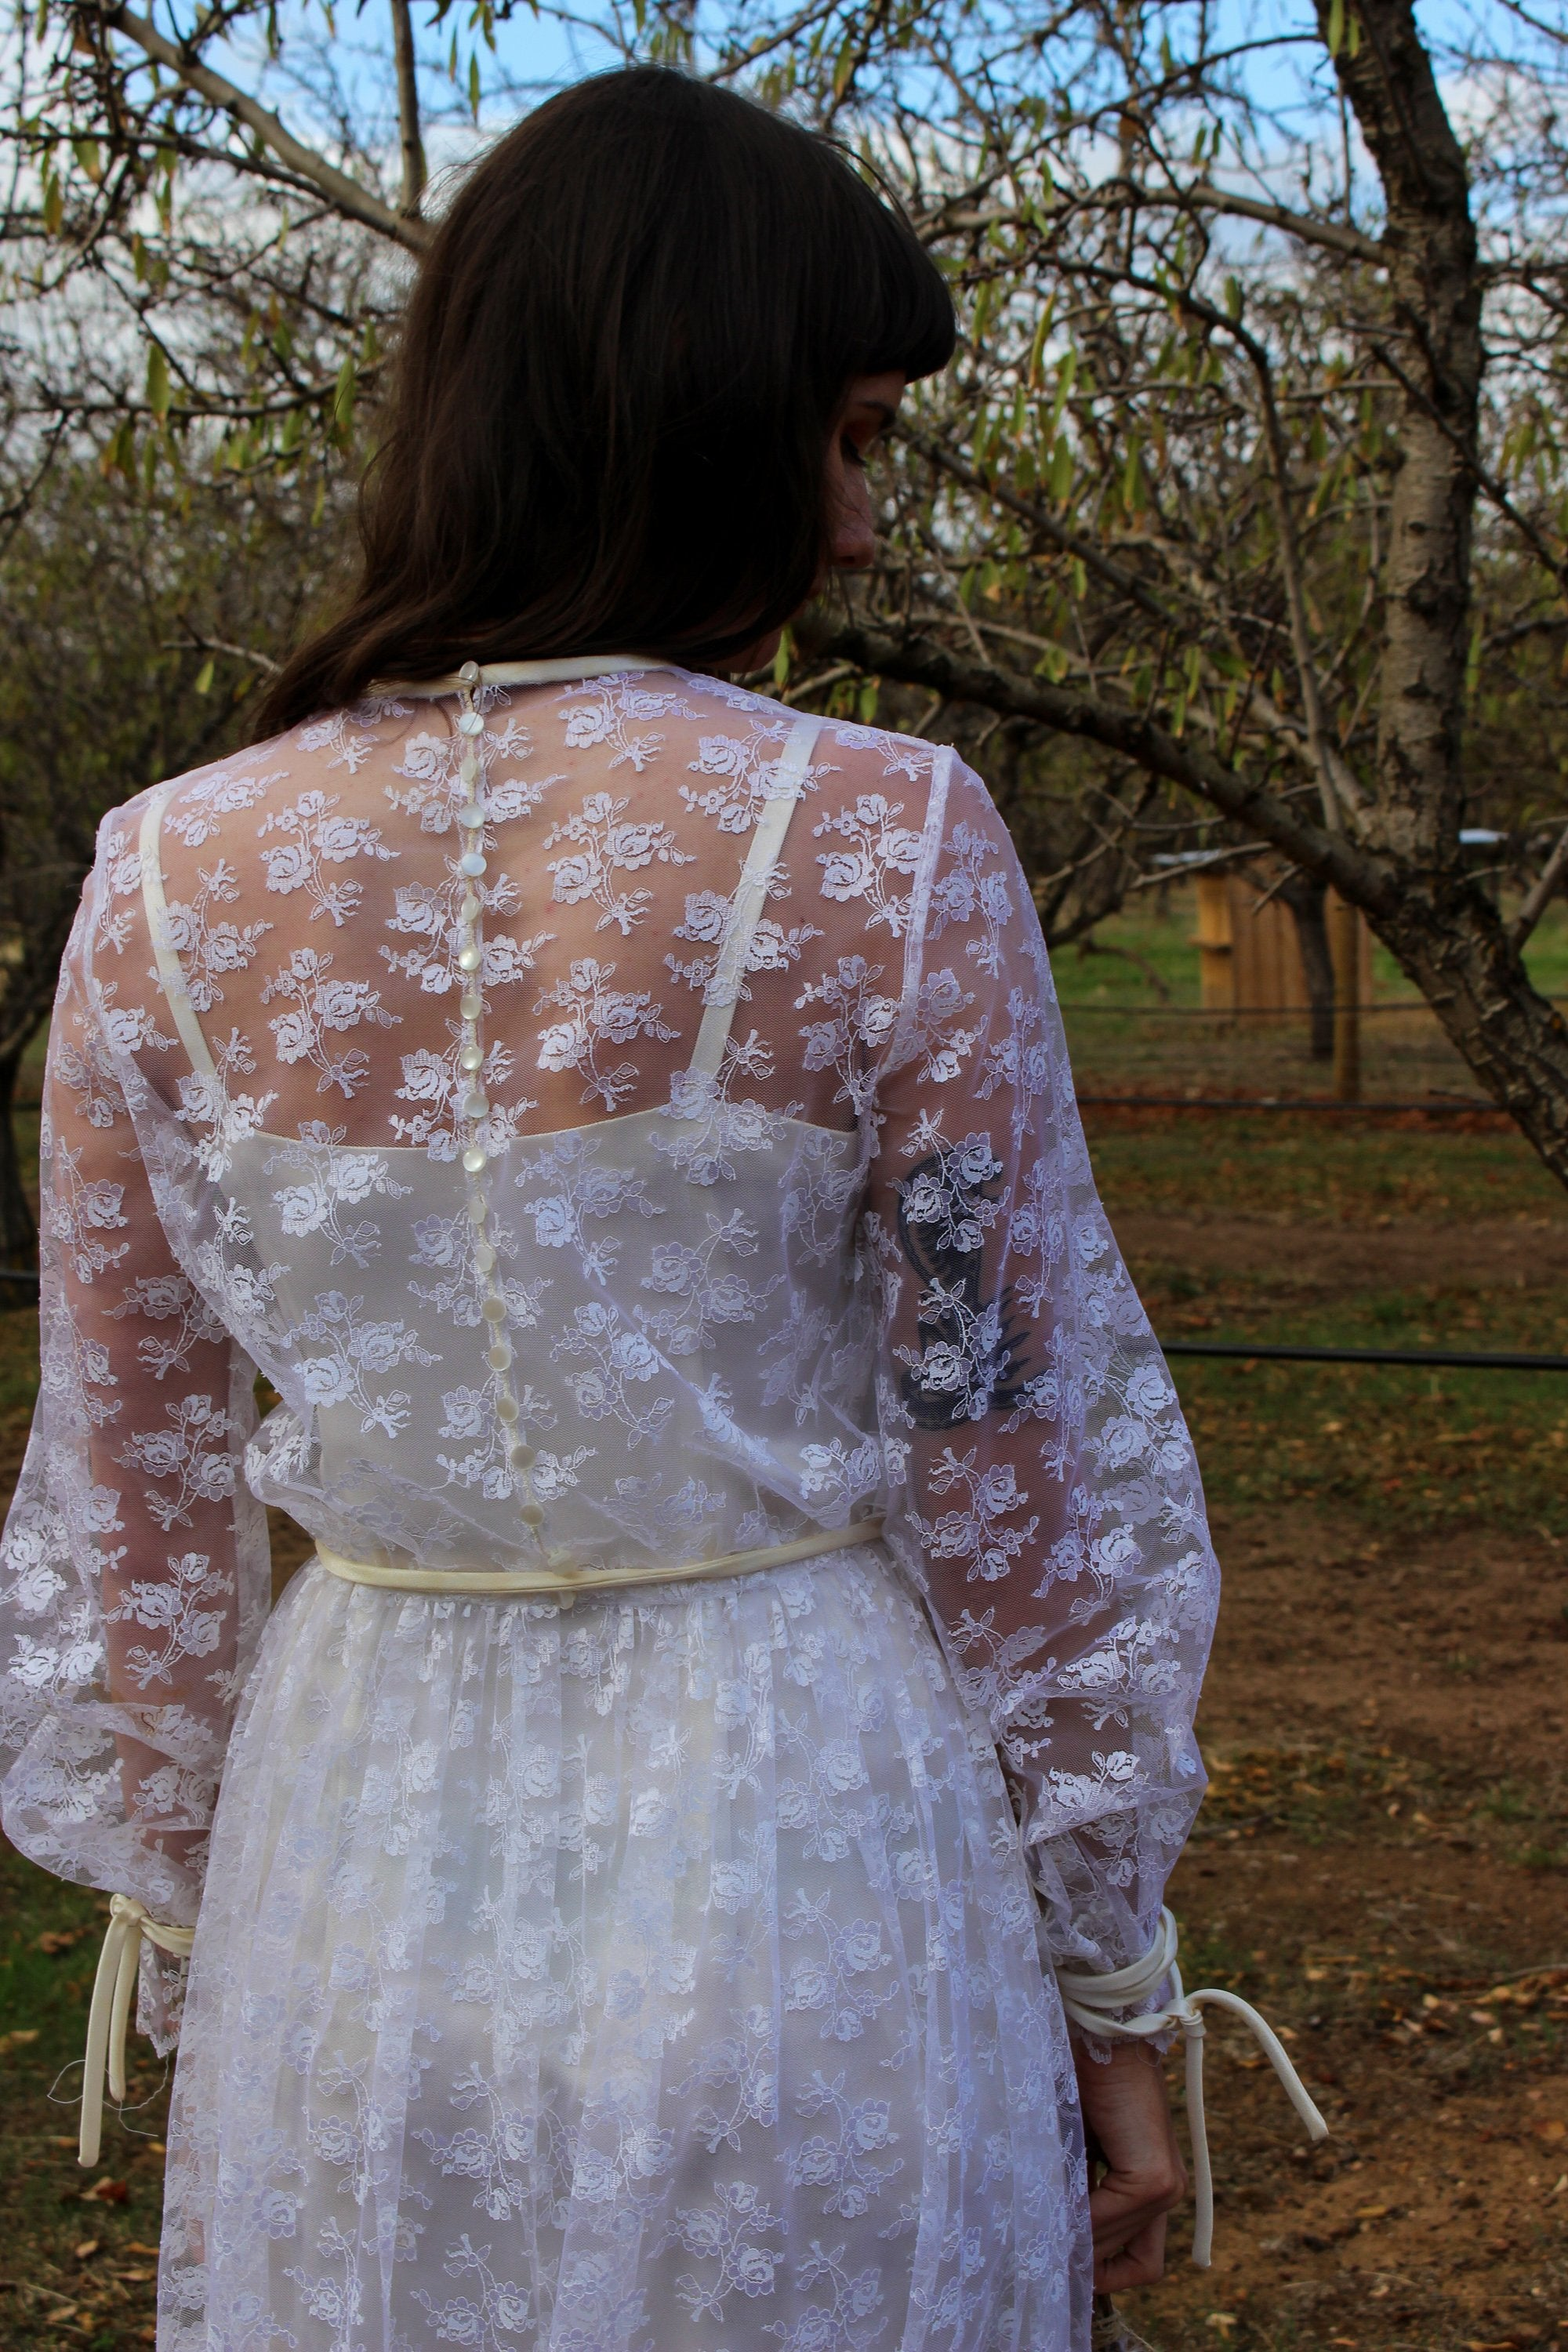 Lace Long Sleeve Dress - Boho Lace Wedding Dress - Rustic Wedding Dress - Romantic Wedding Dress - Hippie Wedding Dress - Boho Bridal Dress